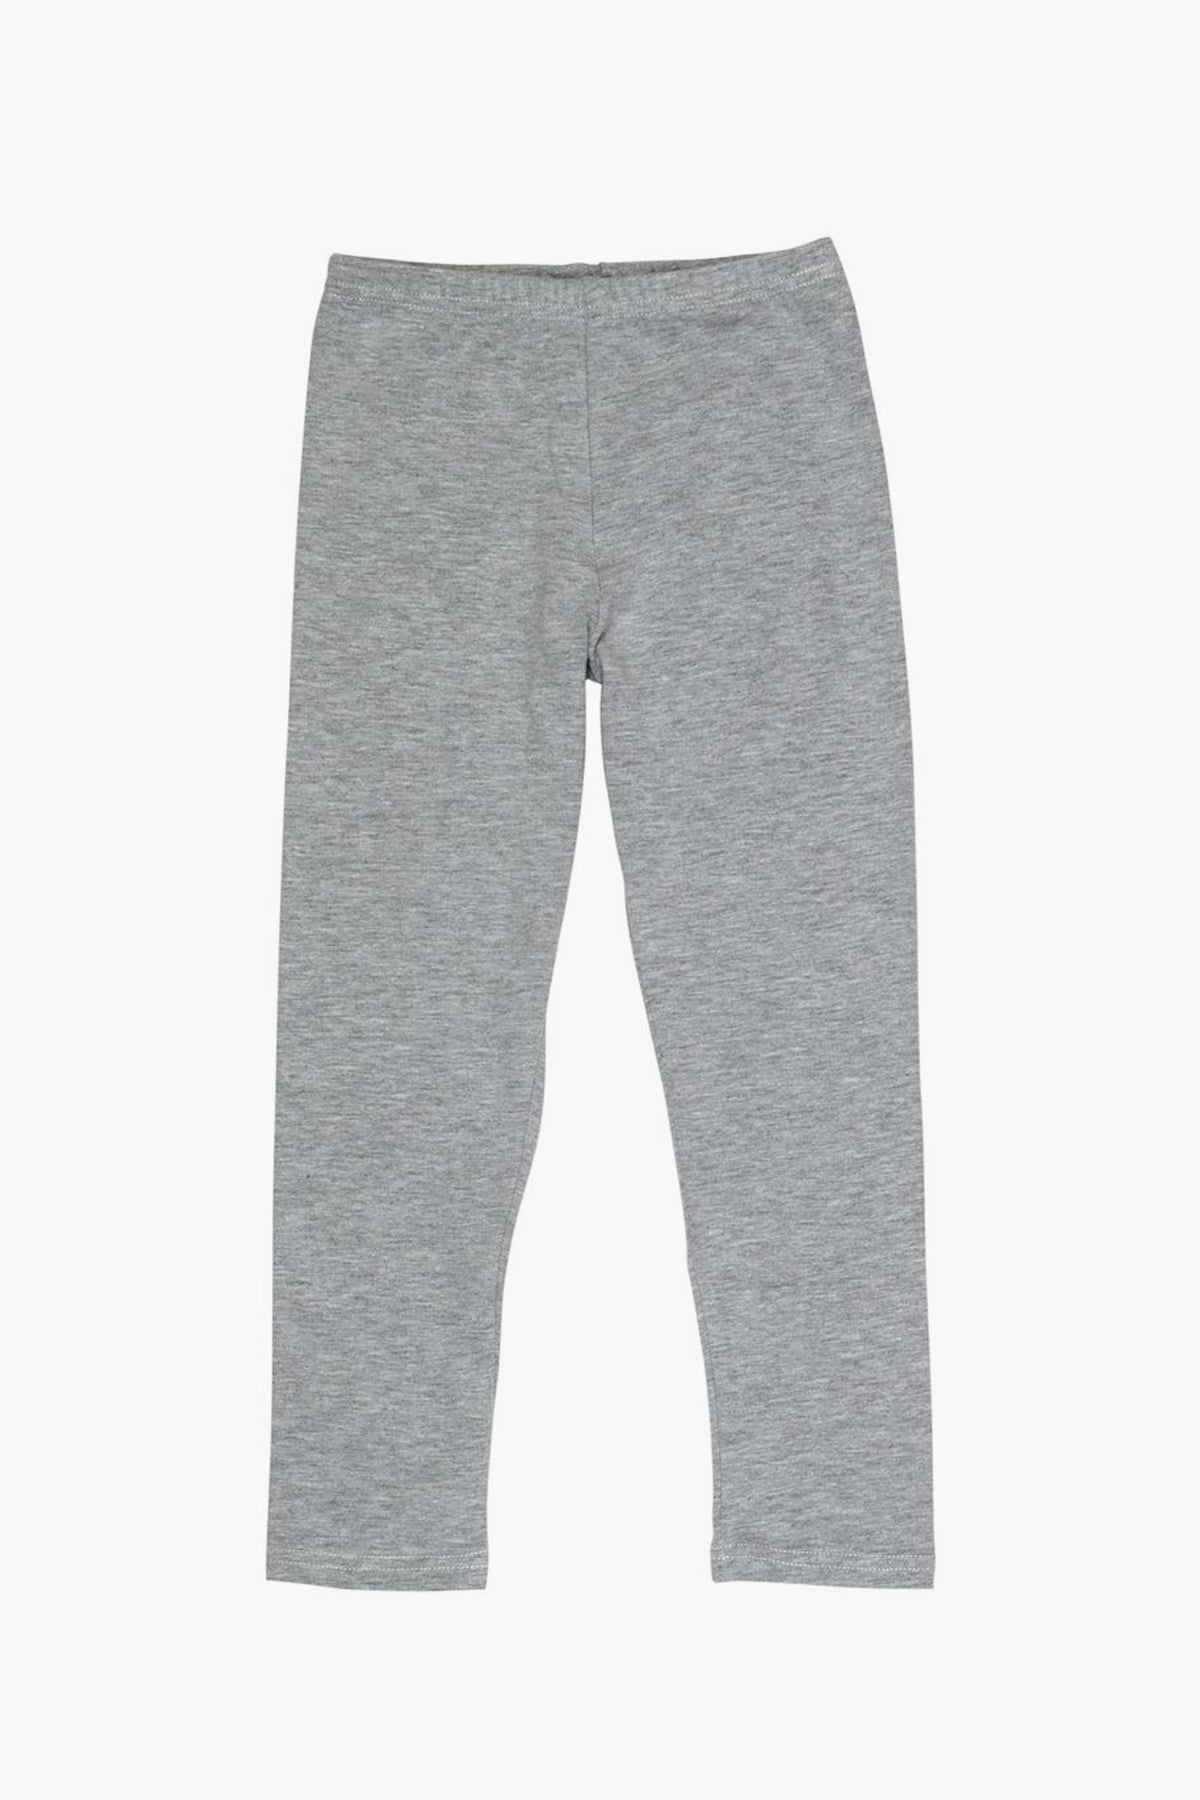 Basic Grey Girls Leggings